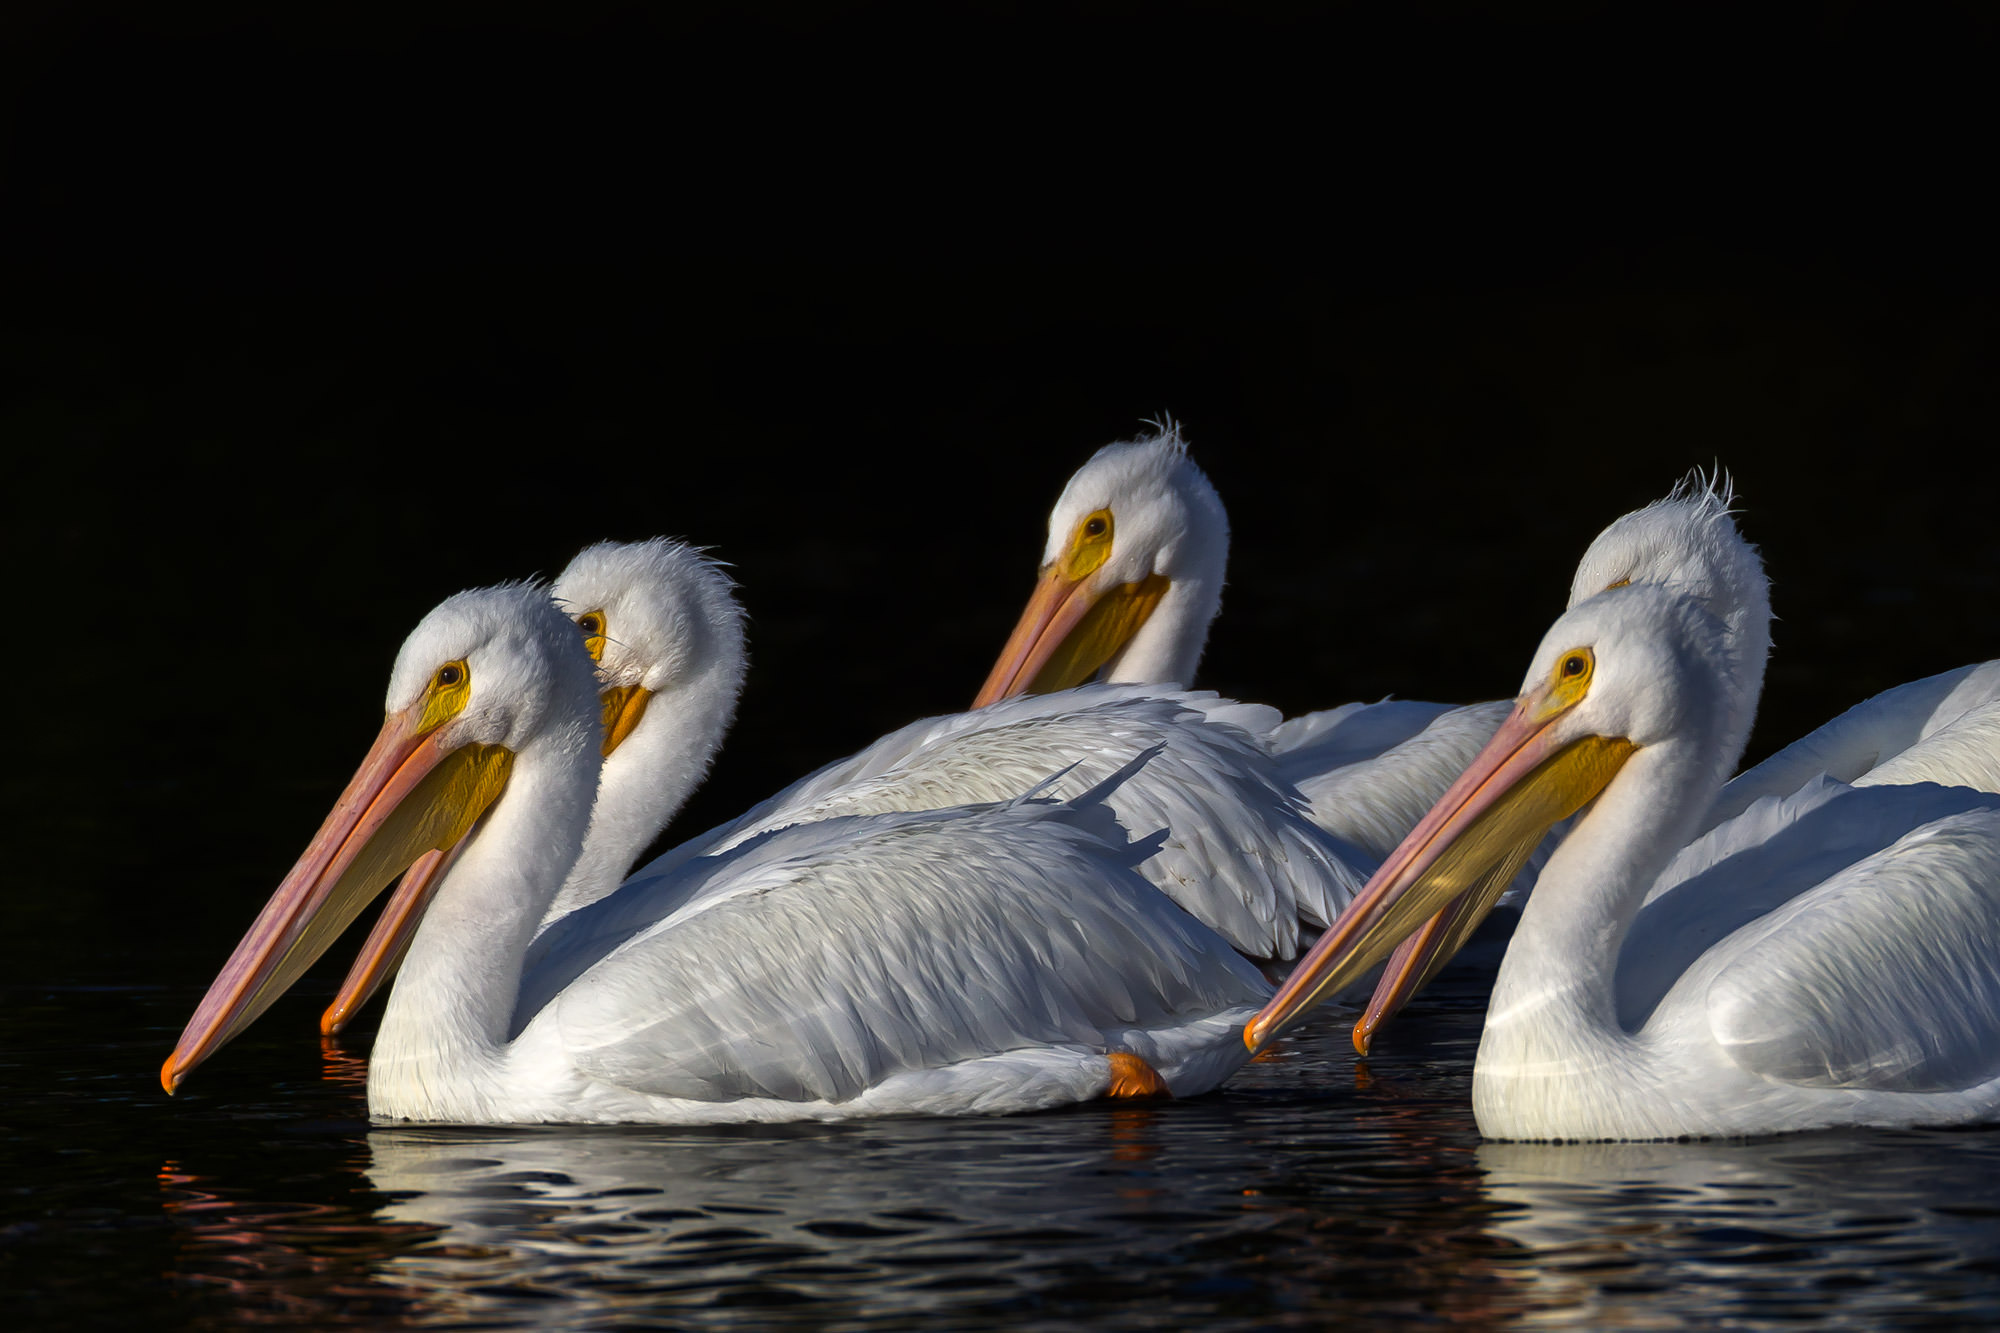 White Pelican Fine Art Photography A Limited Edition photograph of a group of White Pelicans swimming against a black background...